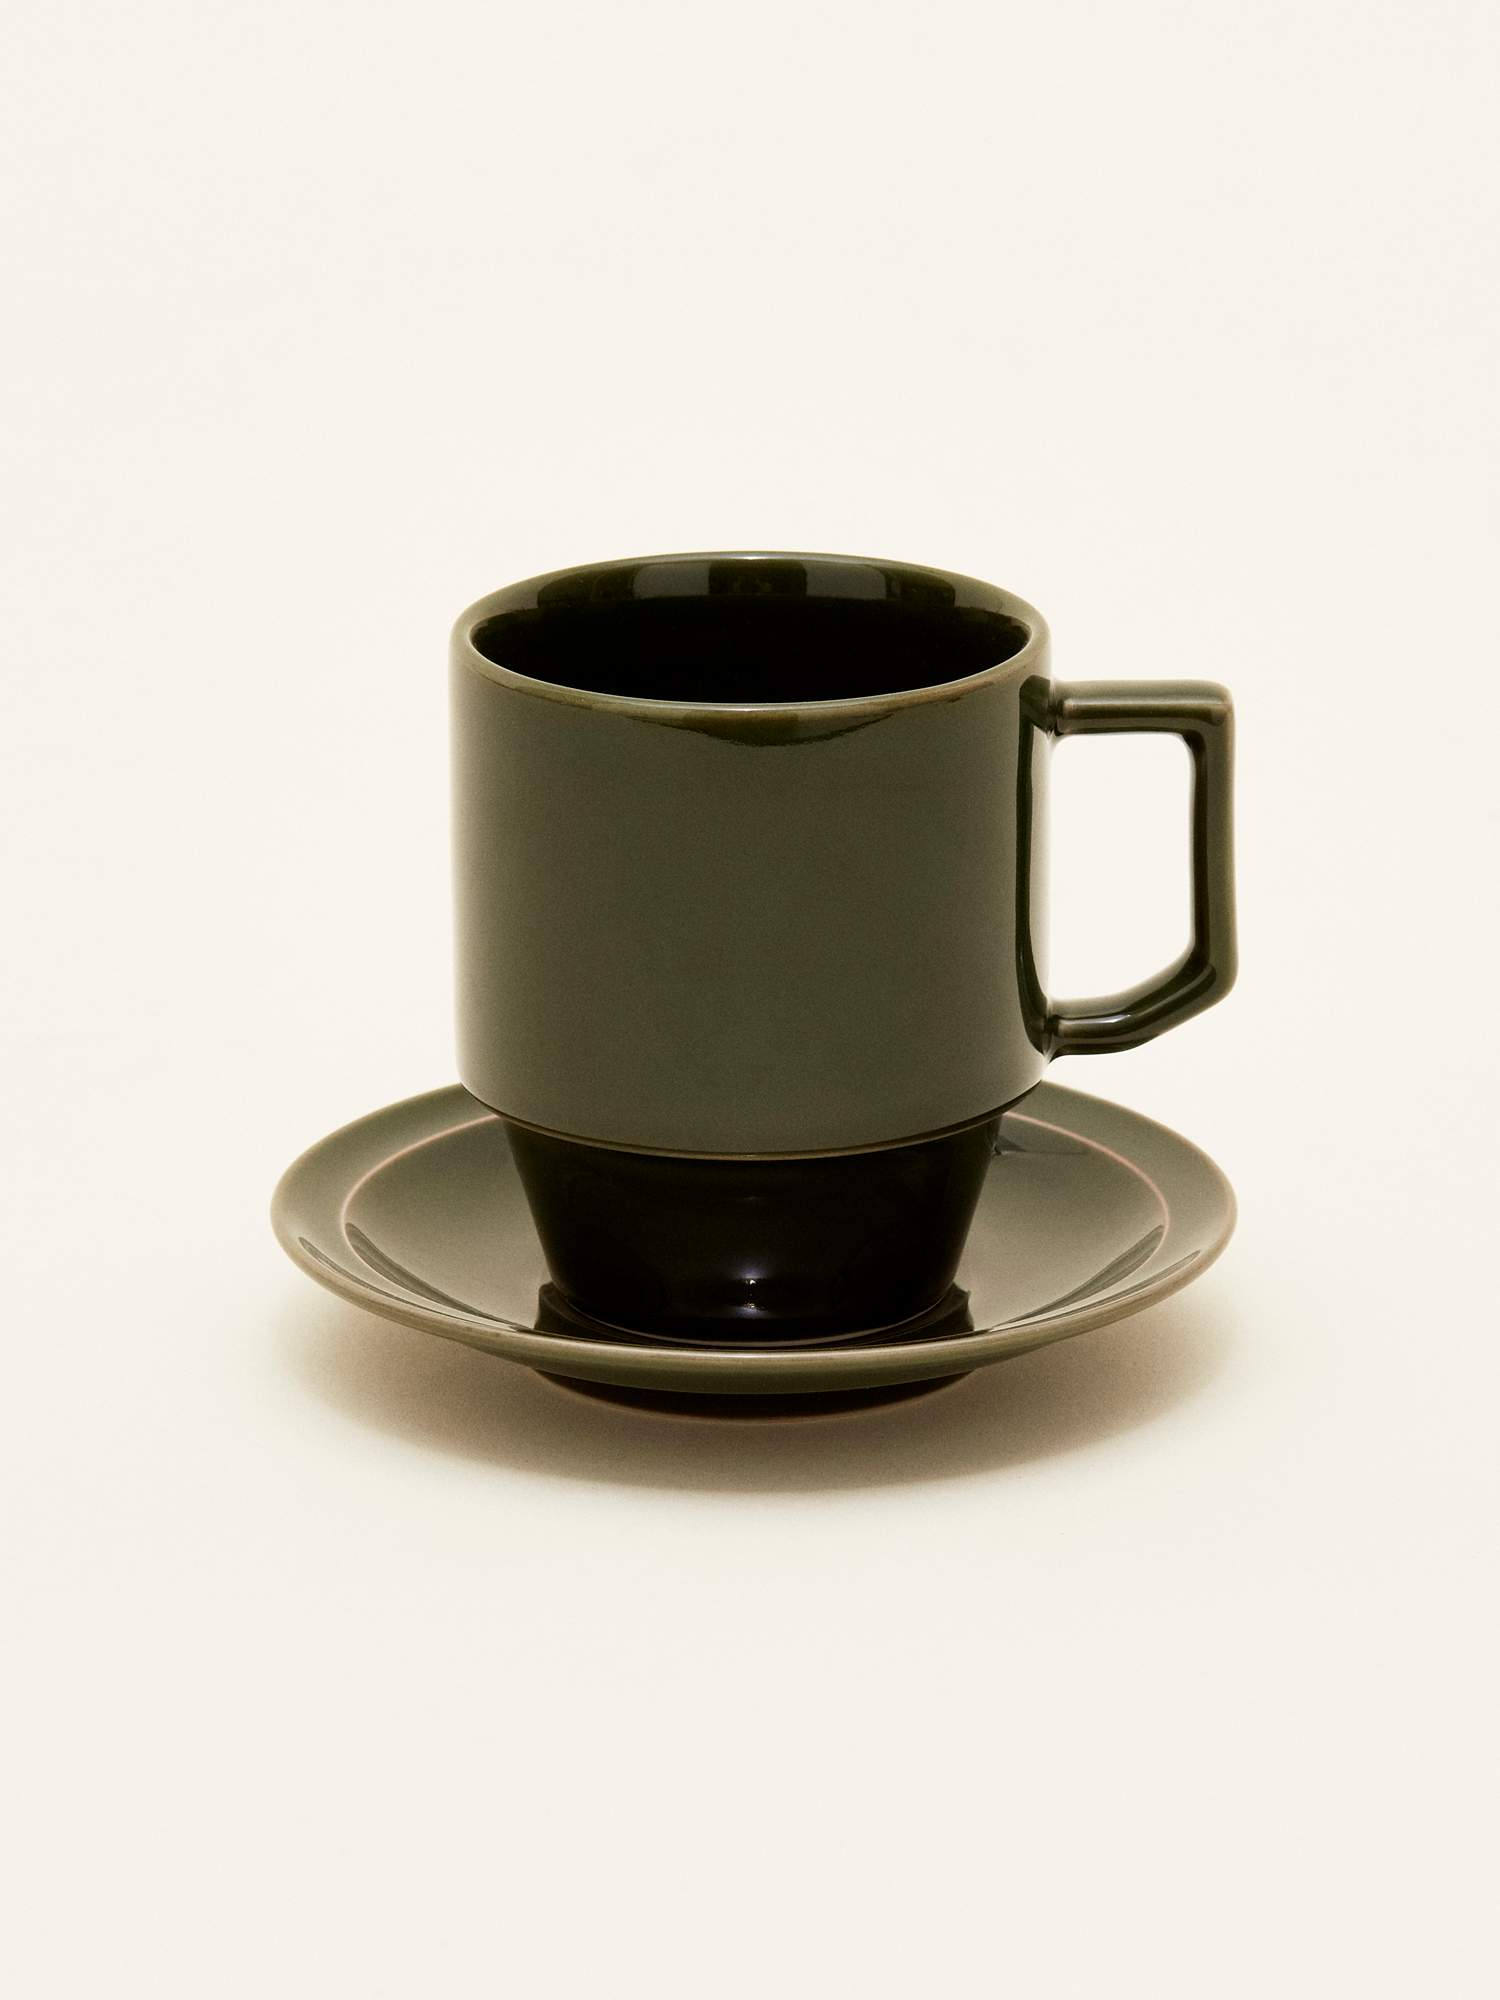 hasamiyaki-cup-with-saucer-large-002.jpg